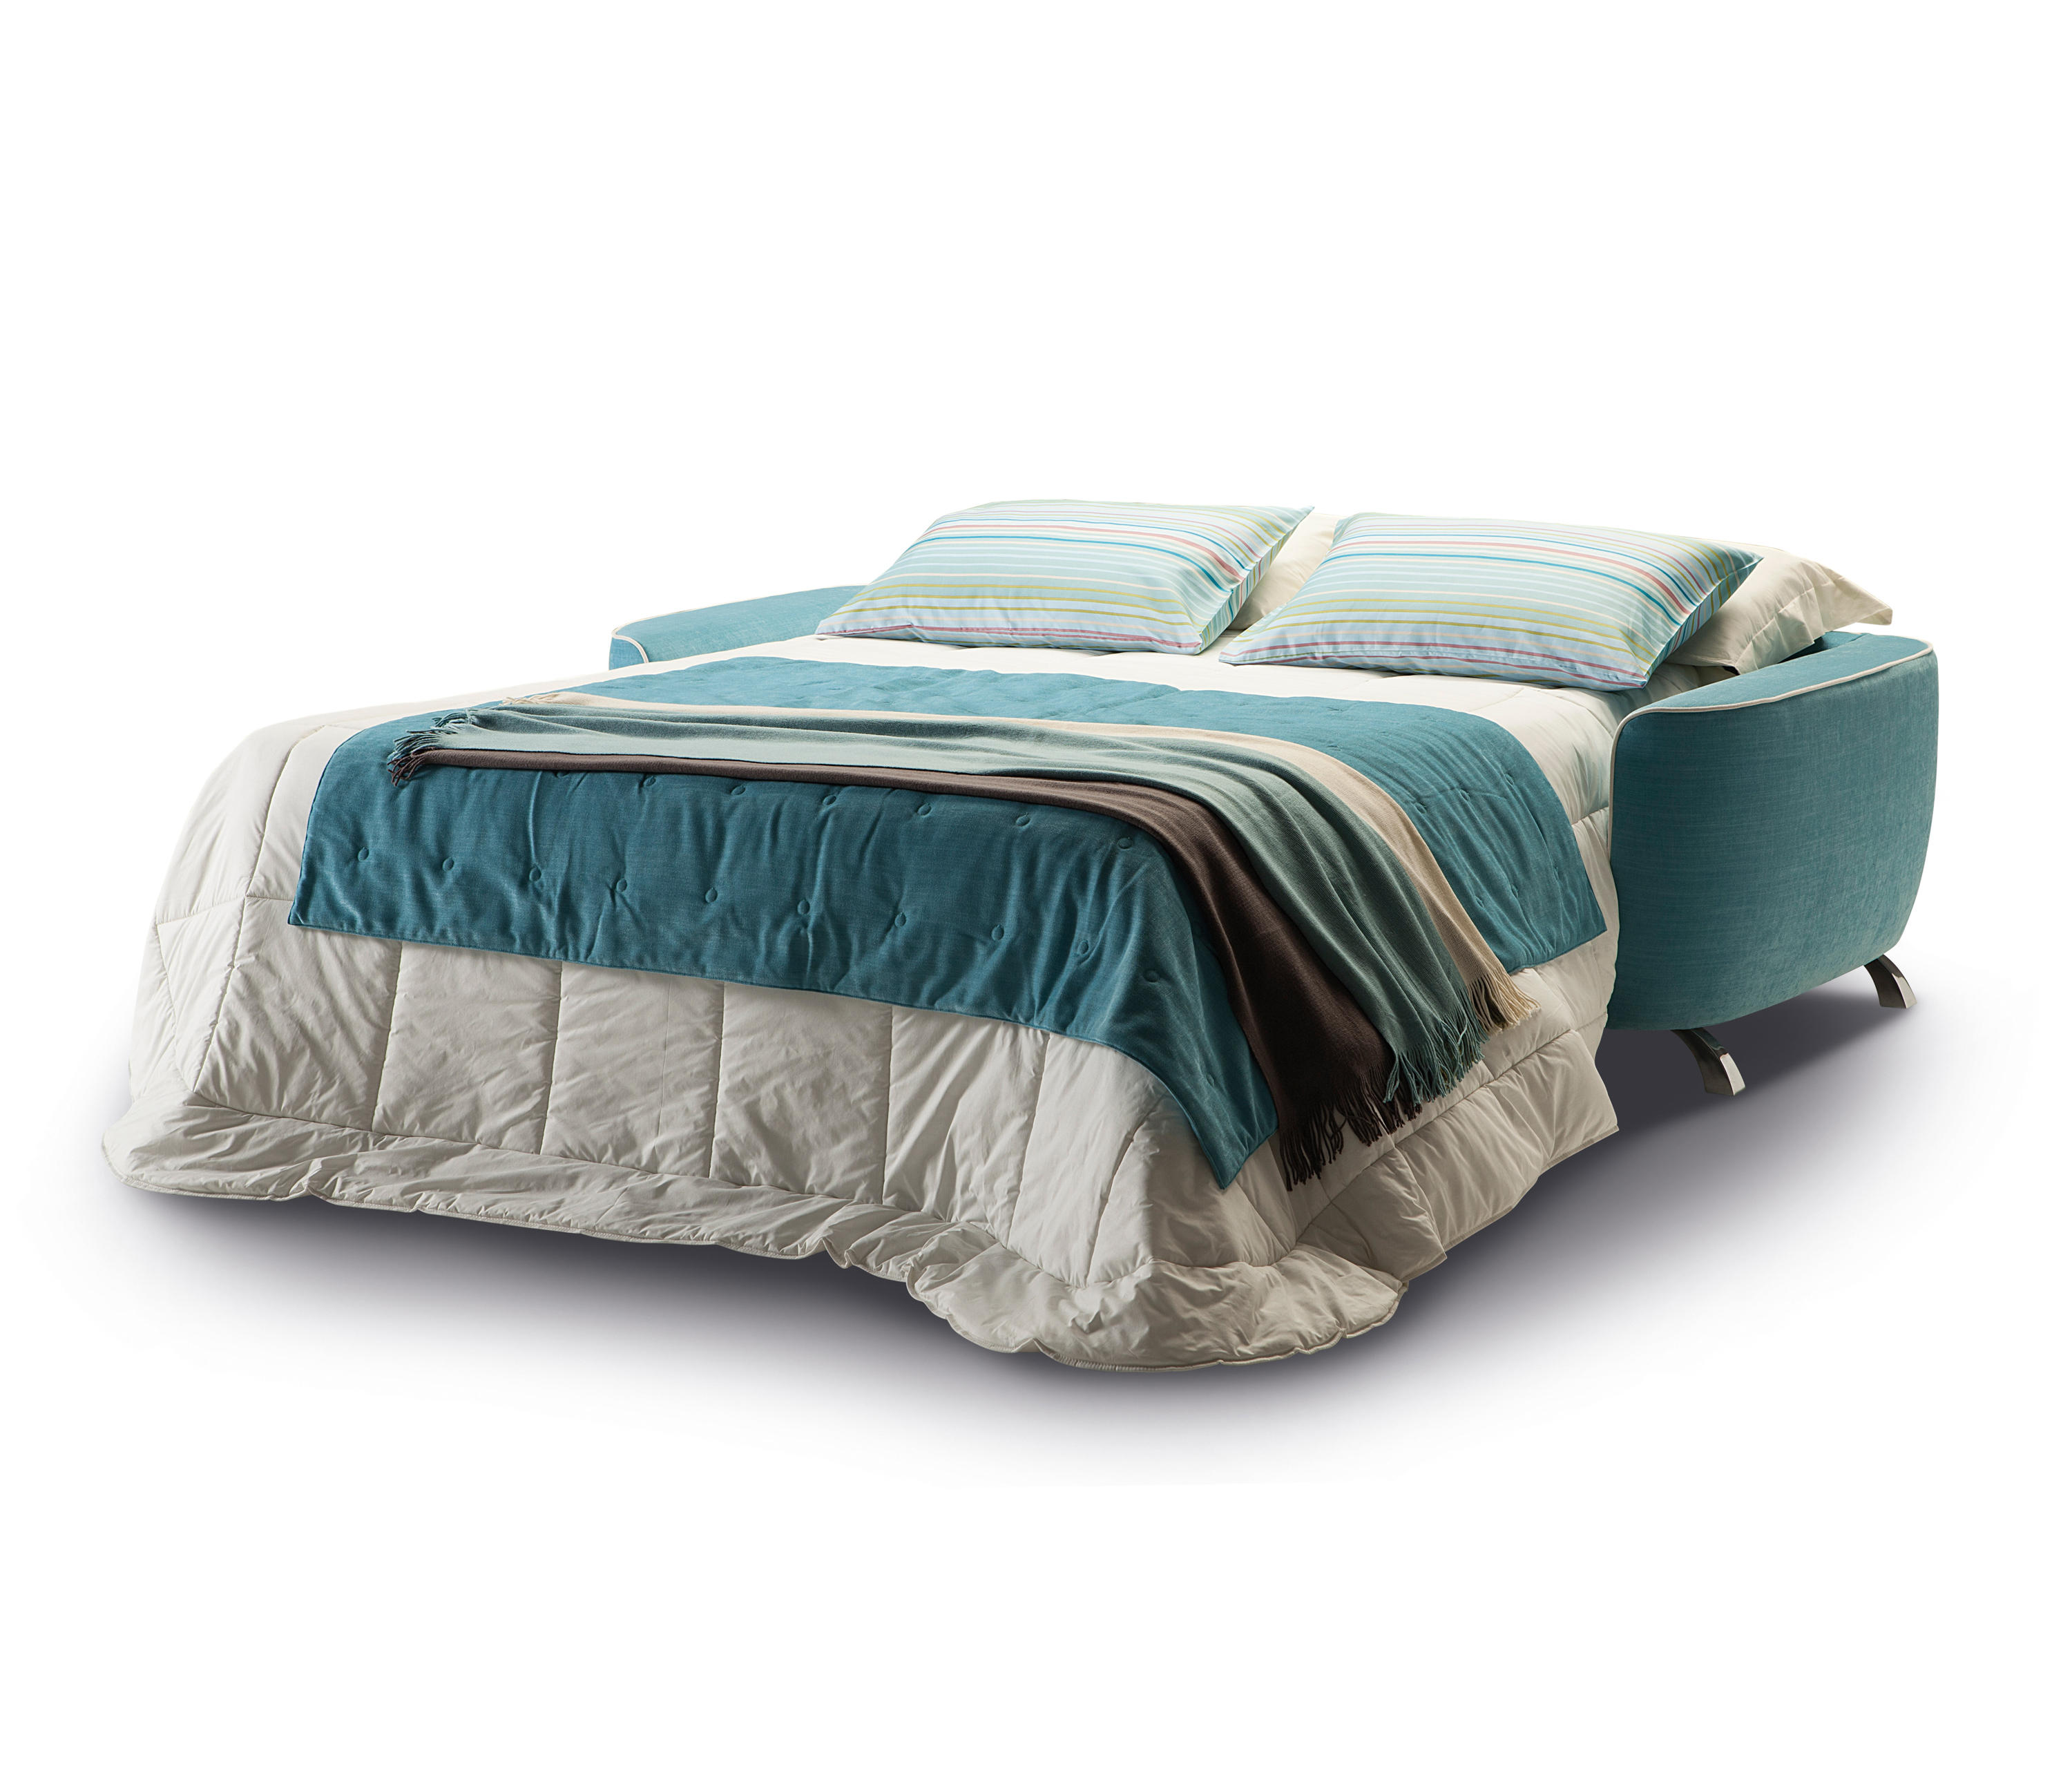 CHARLES Sofa beds from Milano Bedding